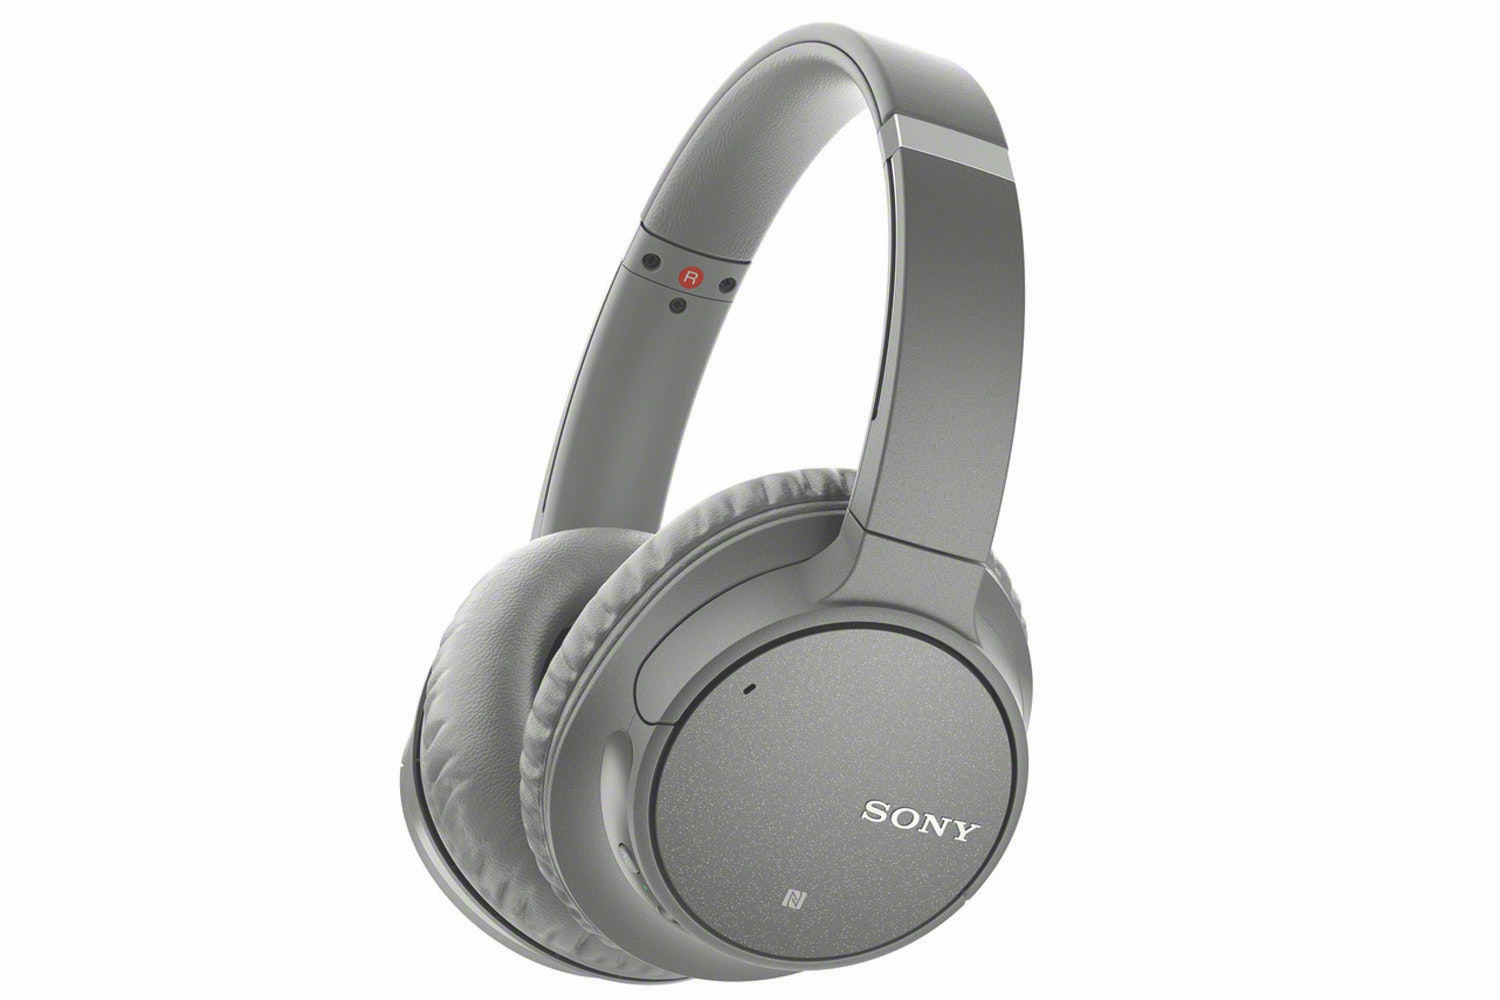 Sony WH-CH700N Wireless Noise Cancelling Headphones |Grey